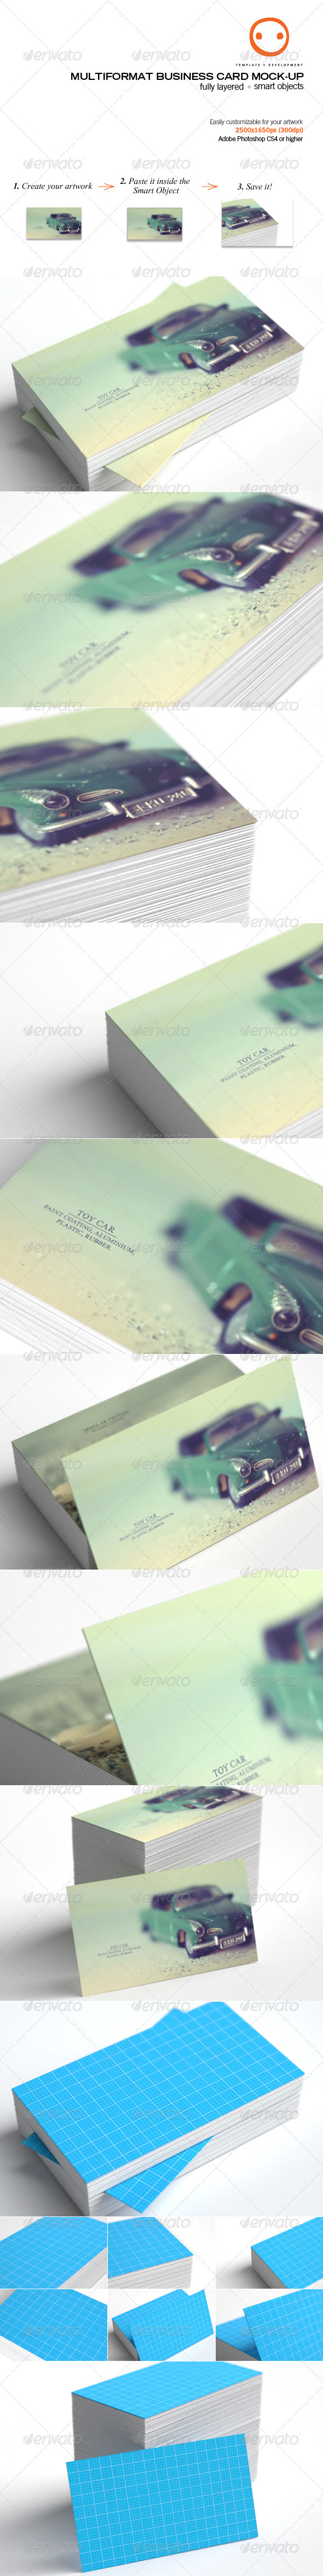 Multiformat Business Card Mock-up - Business Cards Print